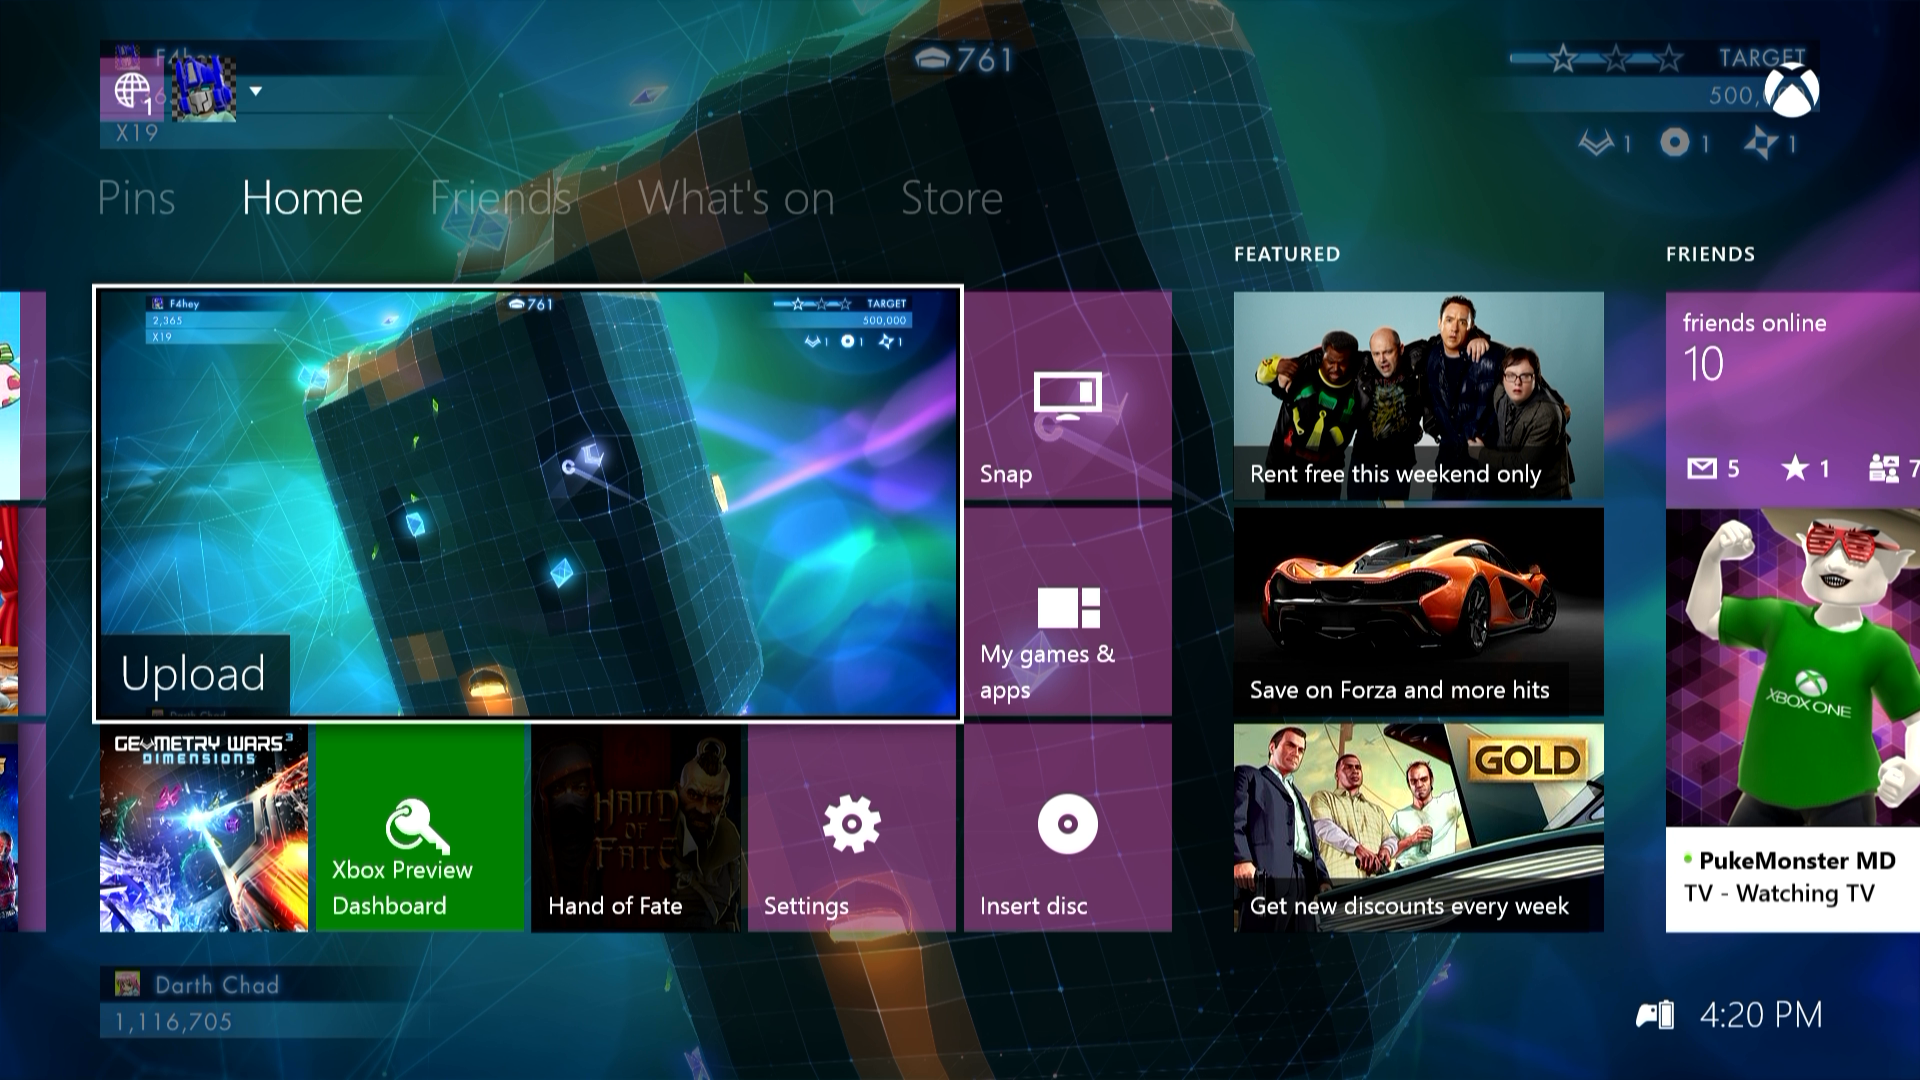 Xbox One Dashboard Wallpaper From my Xbox One Dashboard